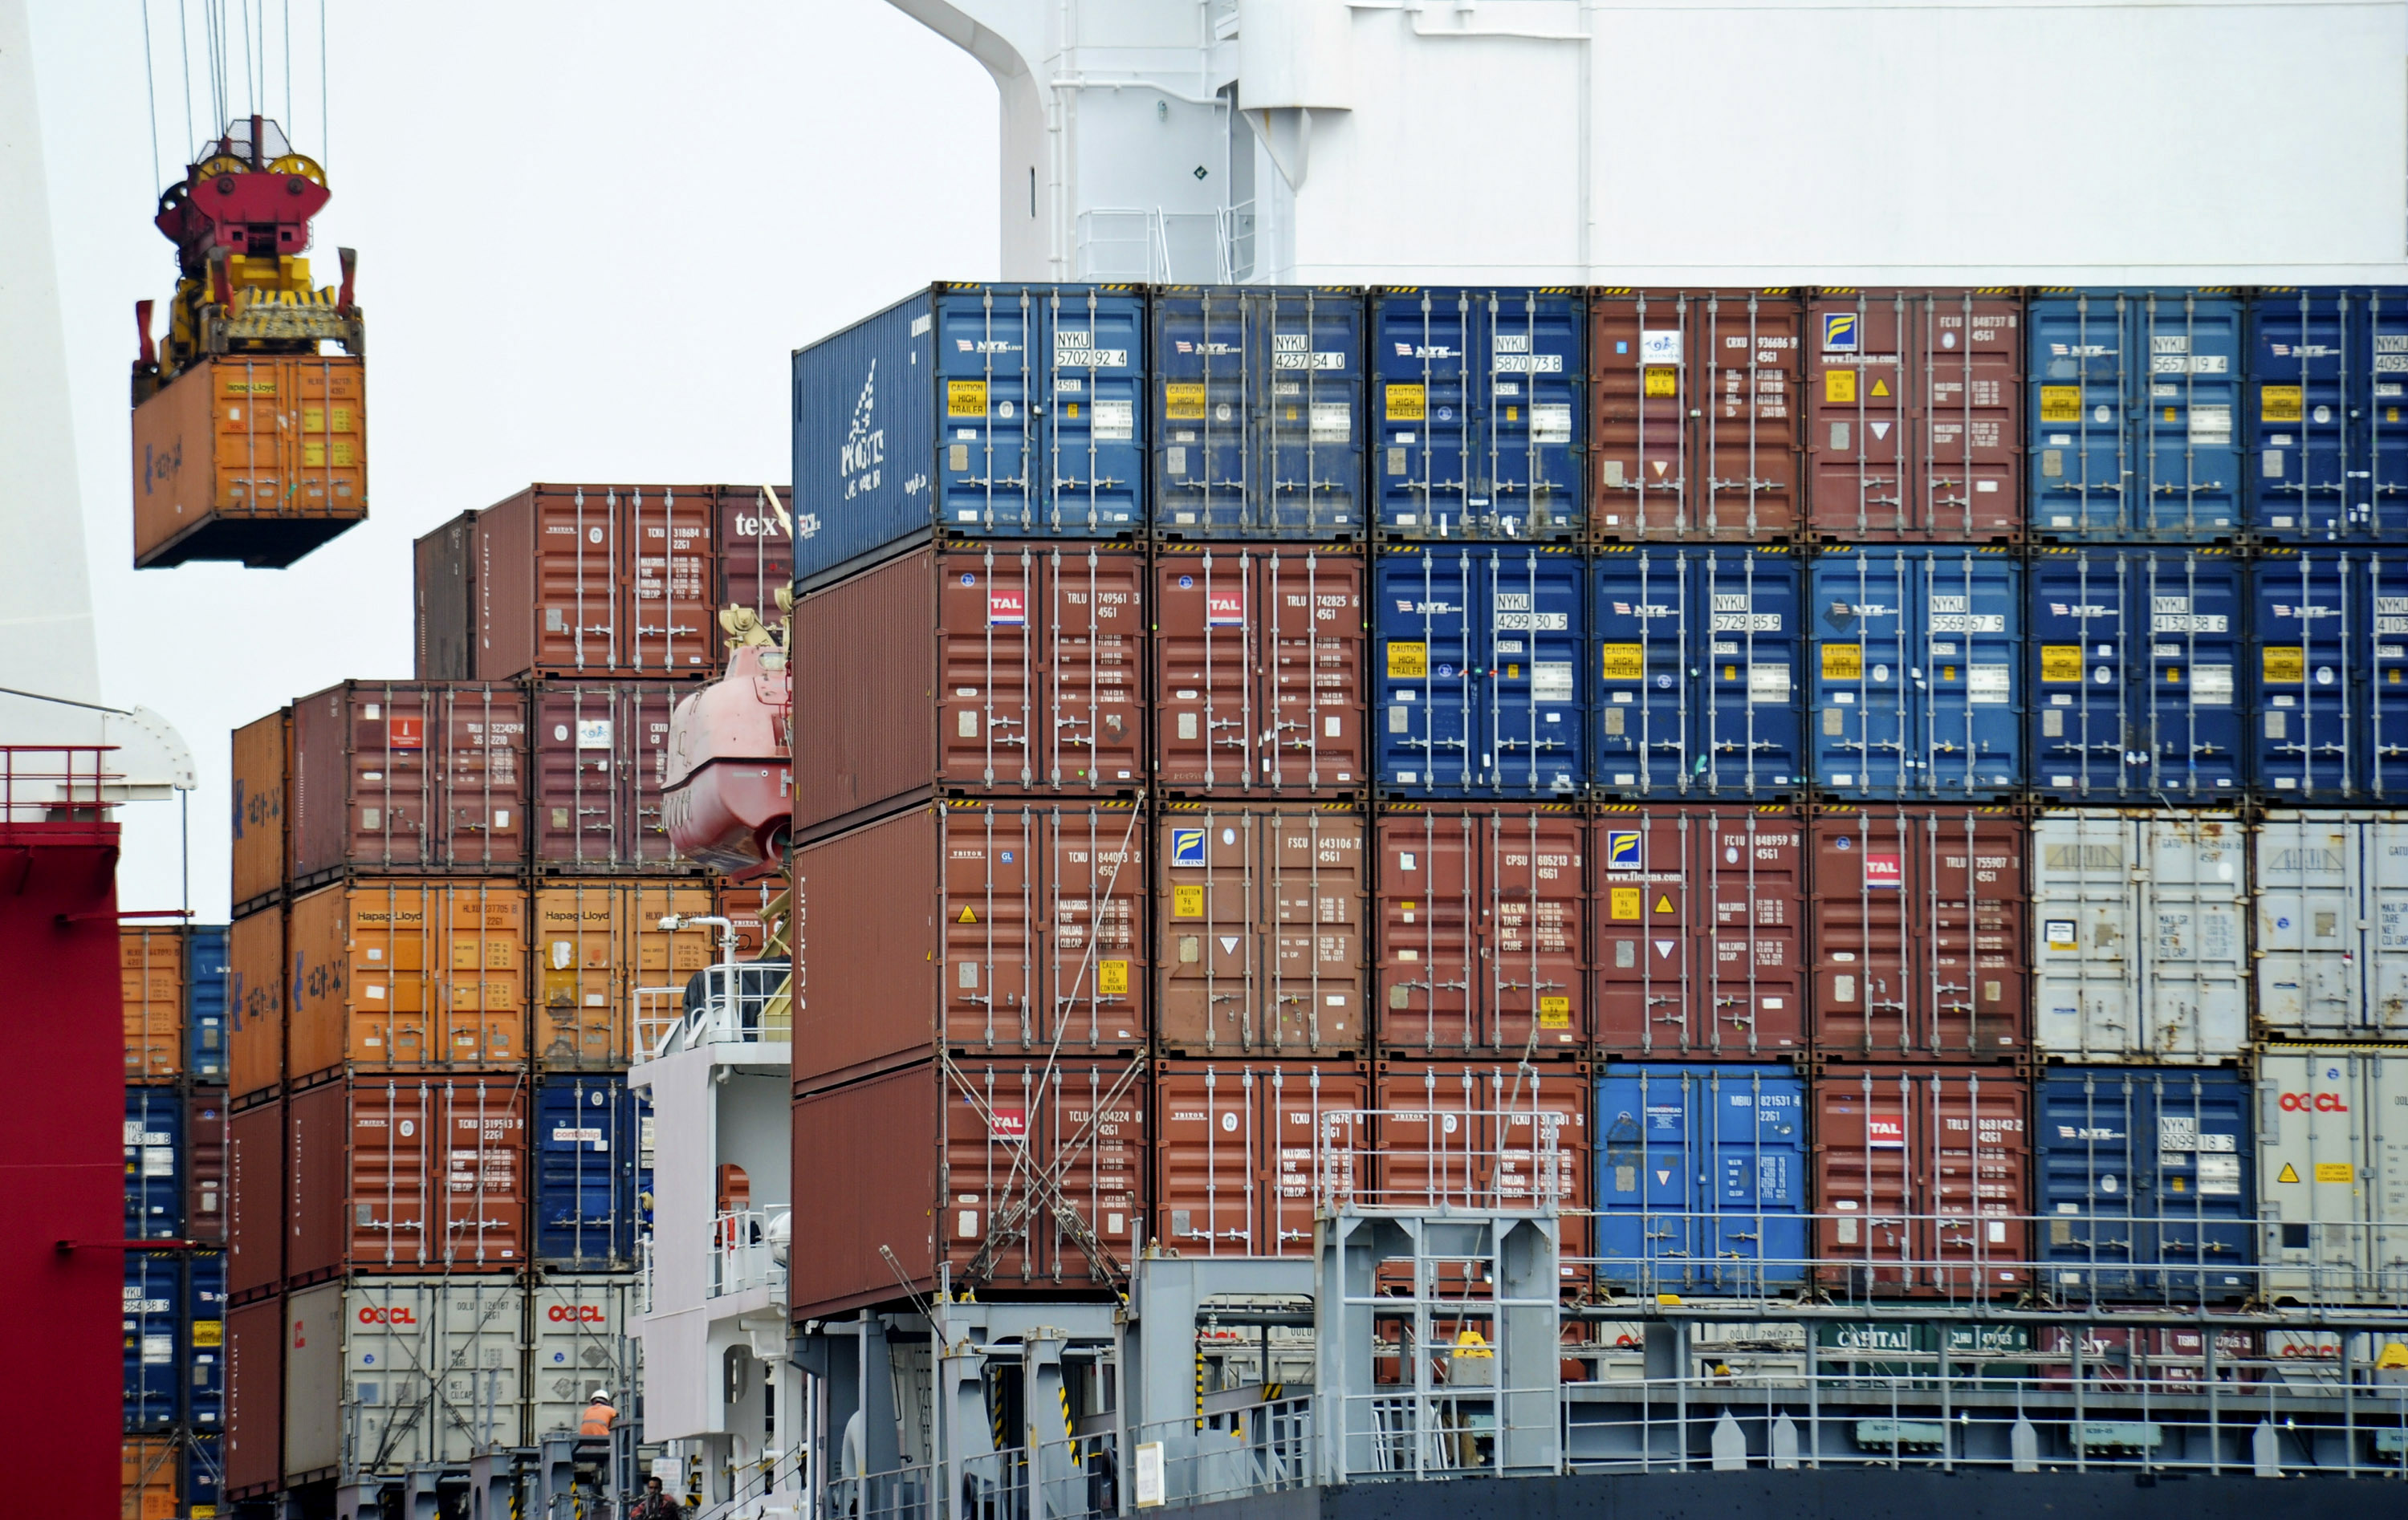 FILE - A container is loaded onto a cargo ship at the Tianjin port in China. The United States has formally told the World Trade Organization (WTO) that it opposes granting China market economy status, a position that if upheld would allow Washington